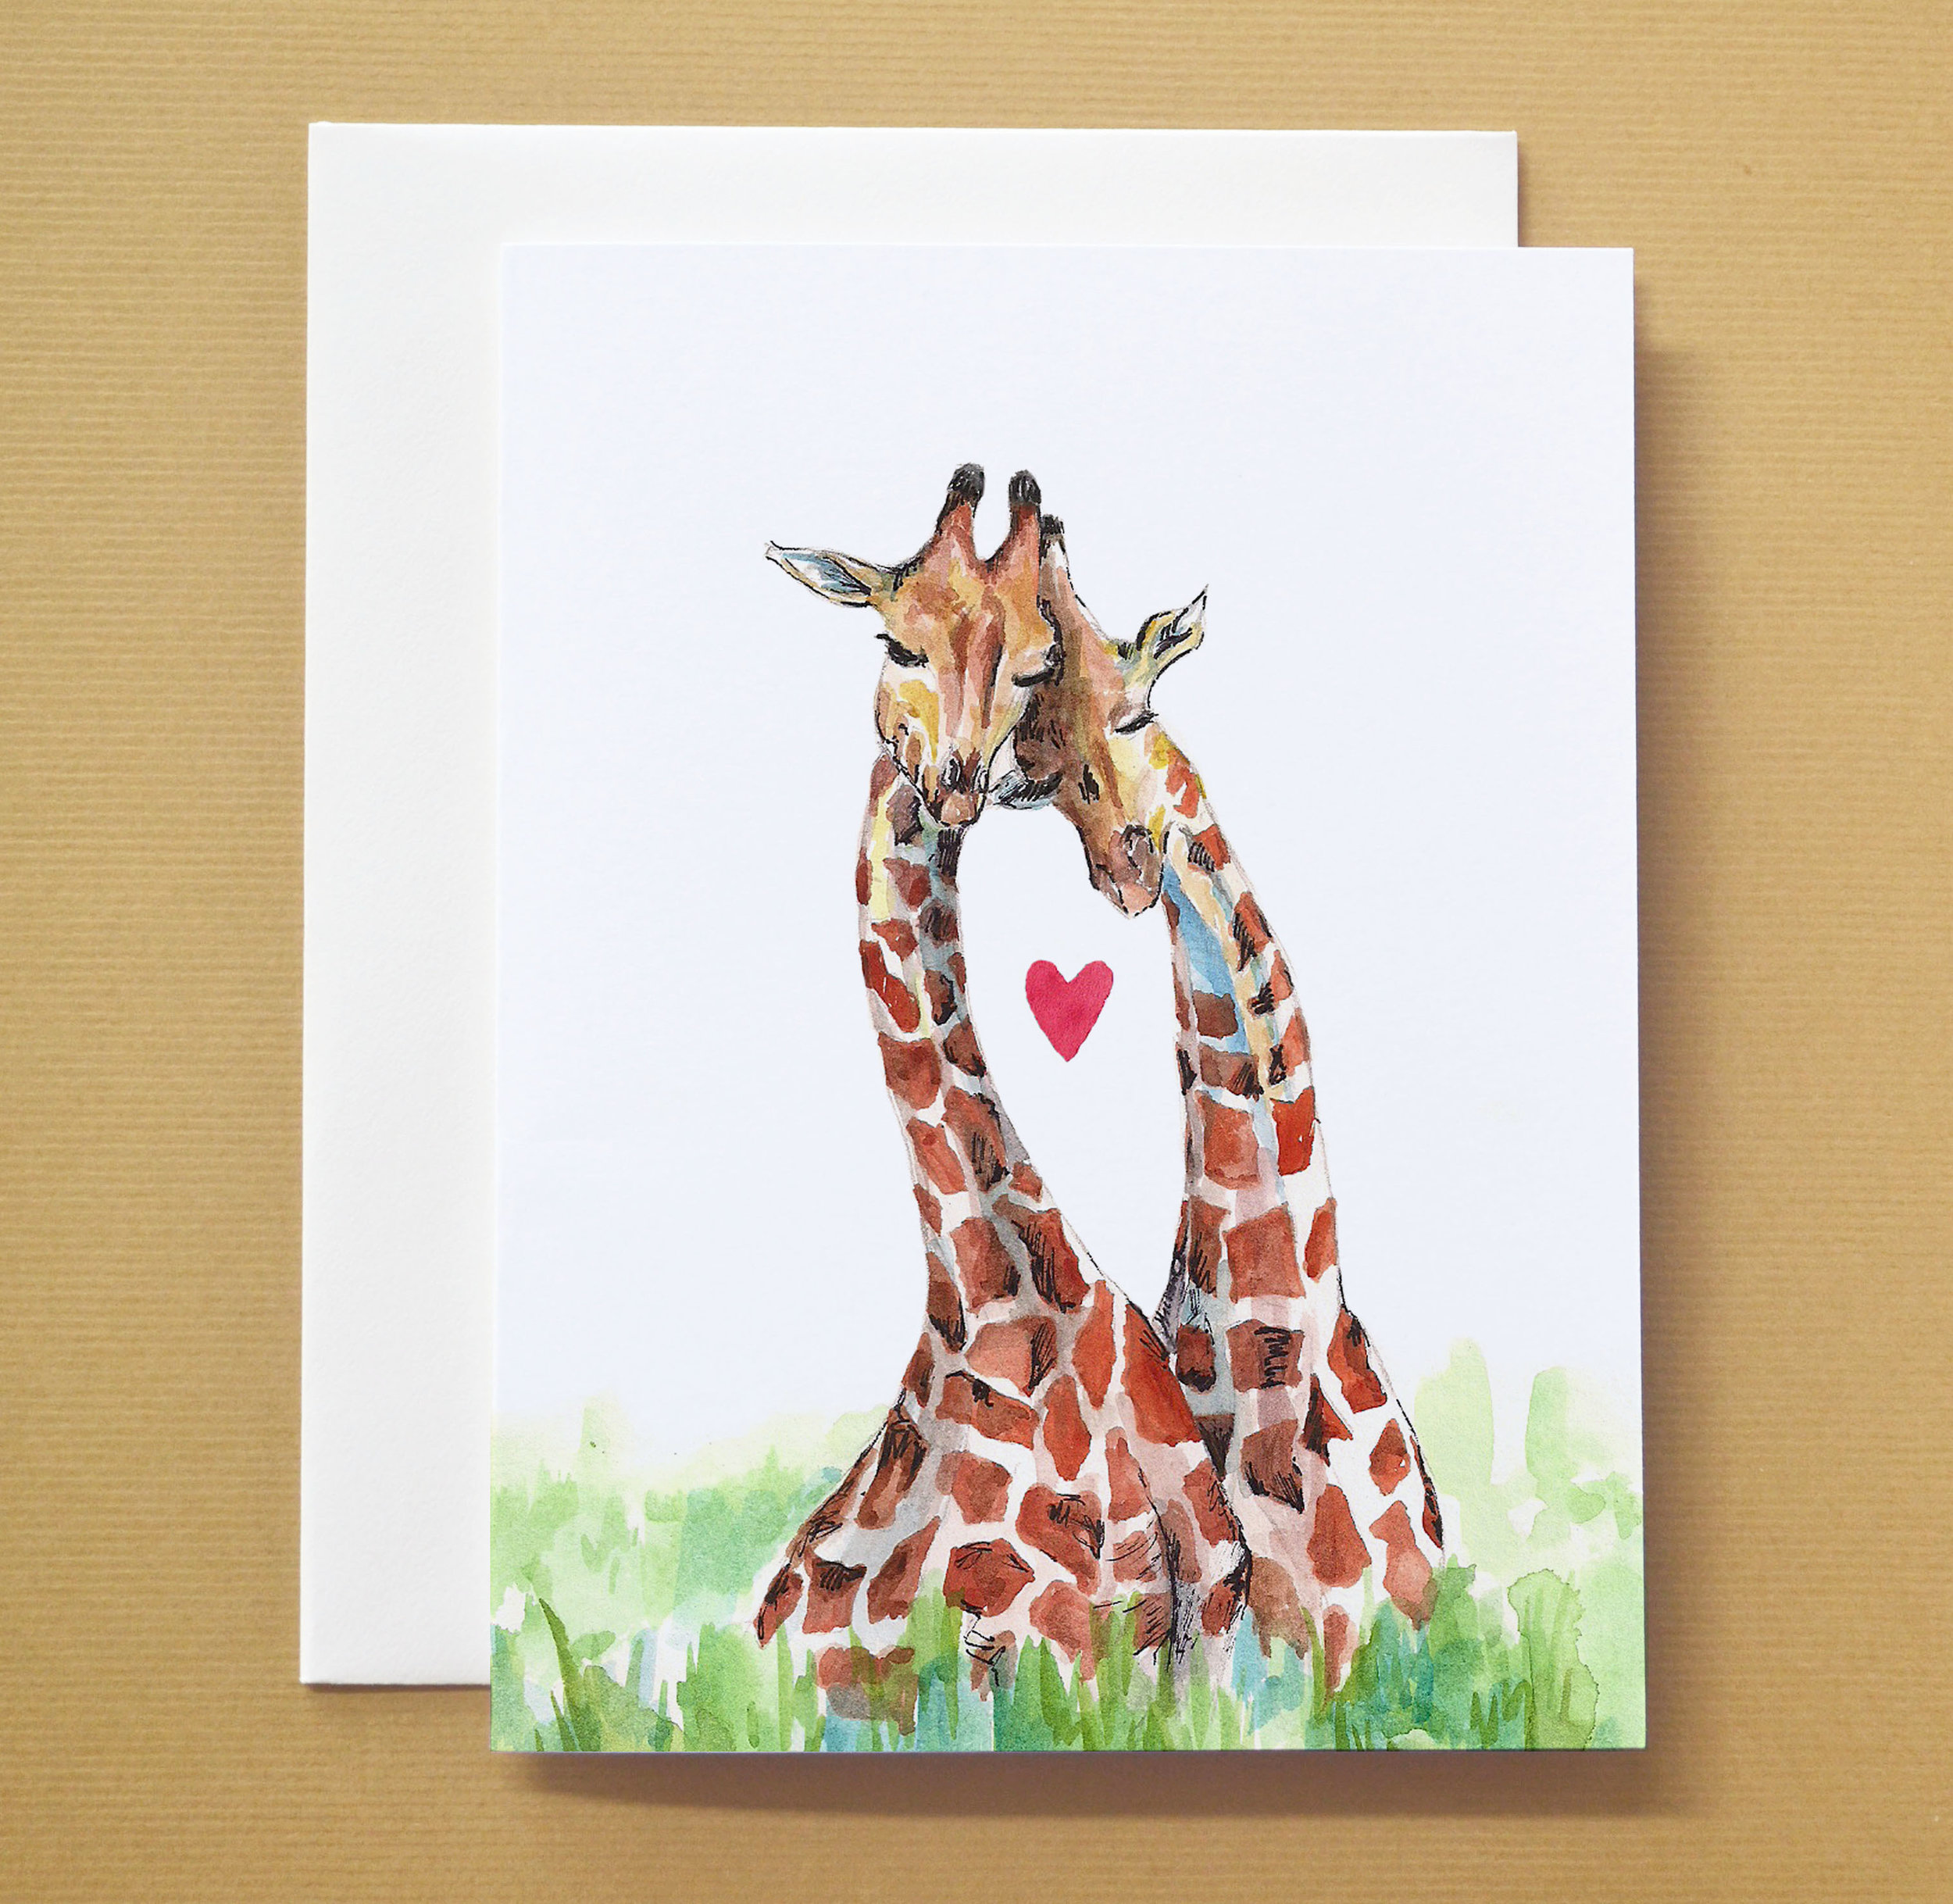 Giraffe with e.jpg